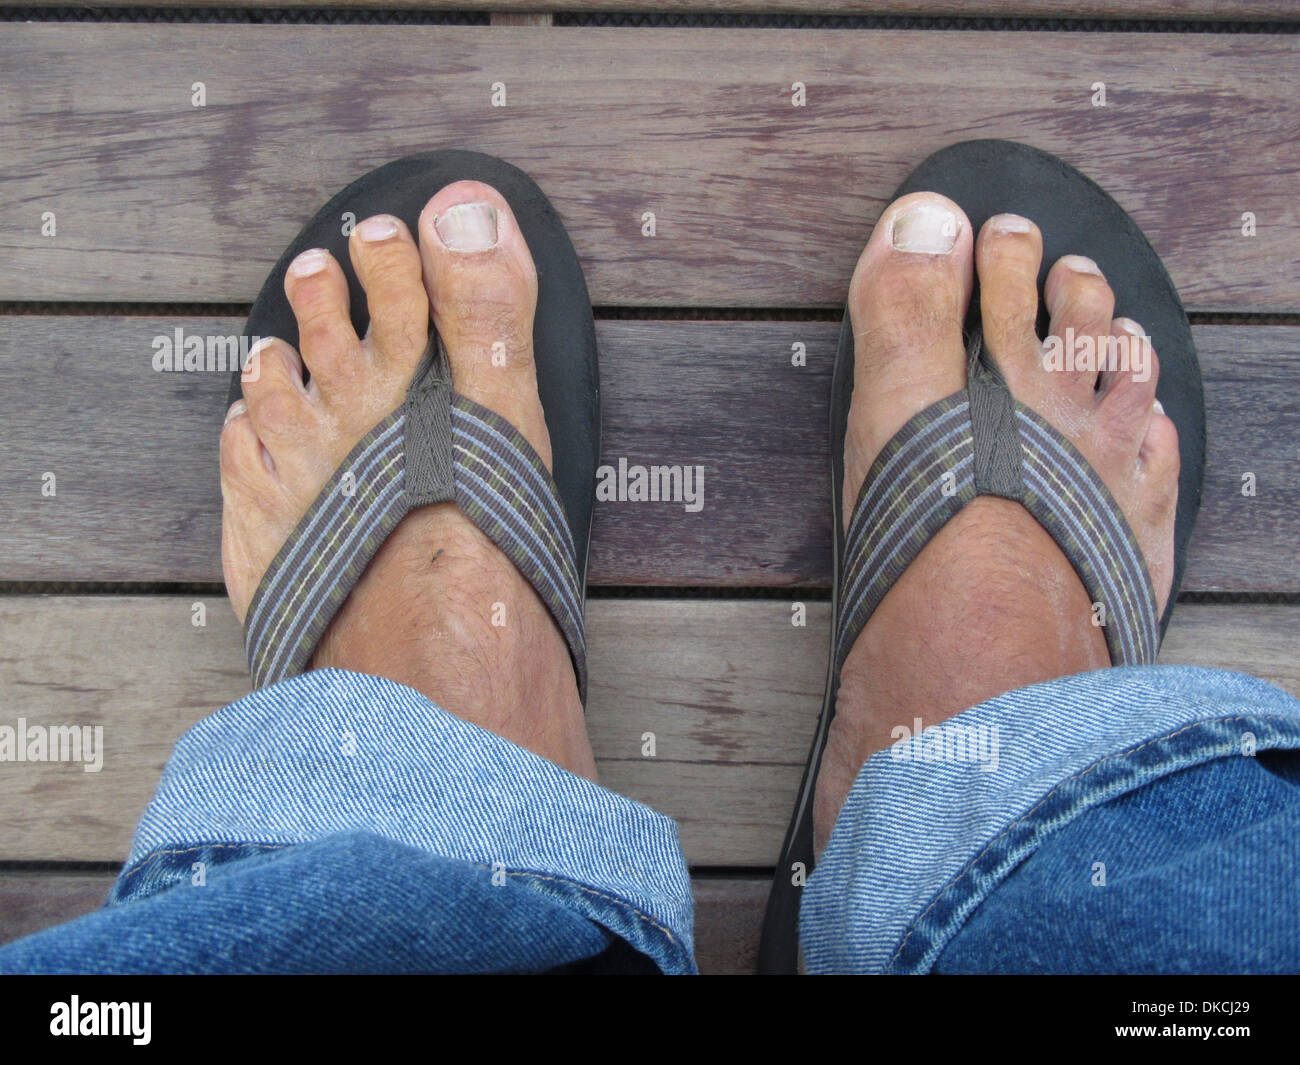 A pair of bare feet in sandals or flip flops. A mosquito is biting the left foot. - Stock Image